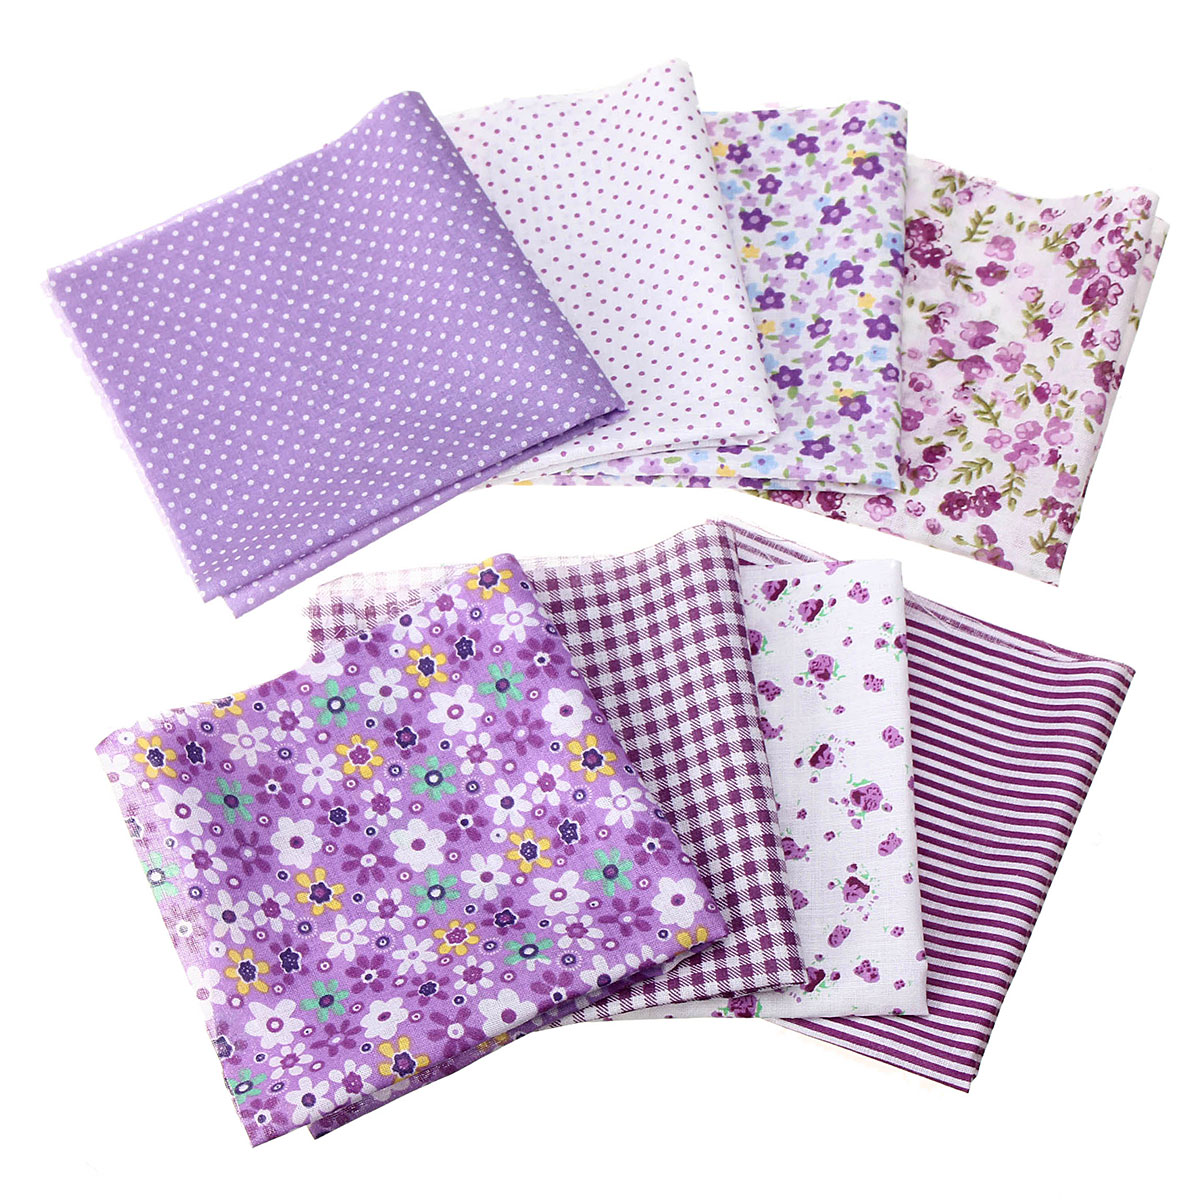 8x Patchwork Fabric Pre Cut Square Charm Quilting Remnant Cotton DIY Hand Craft